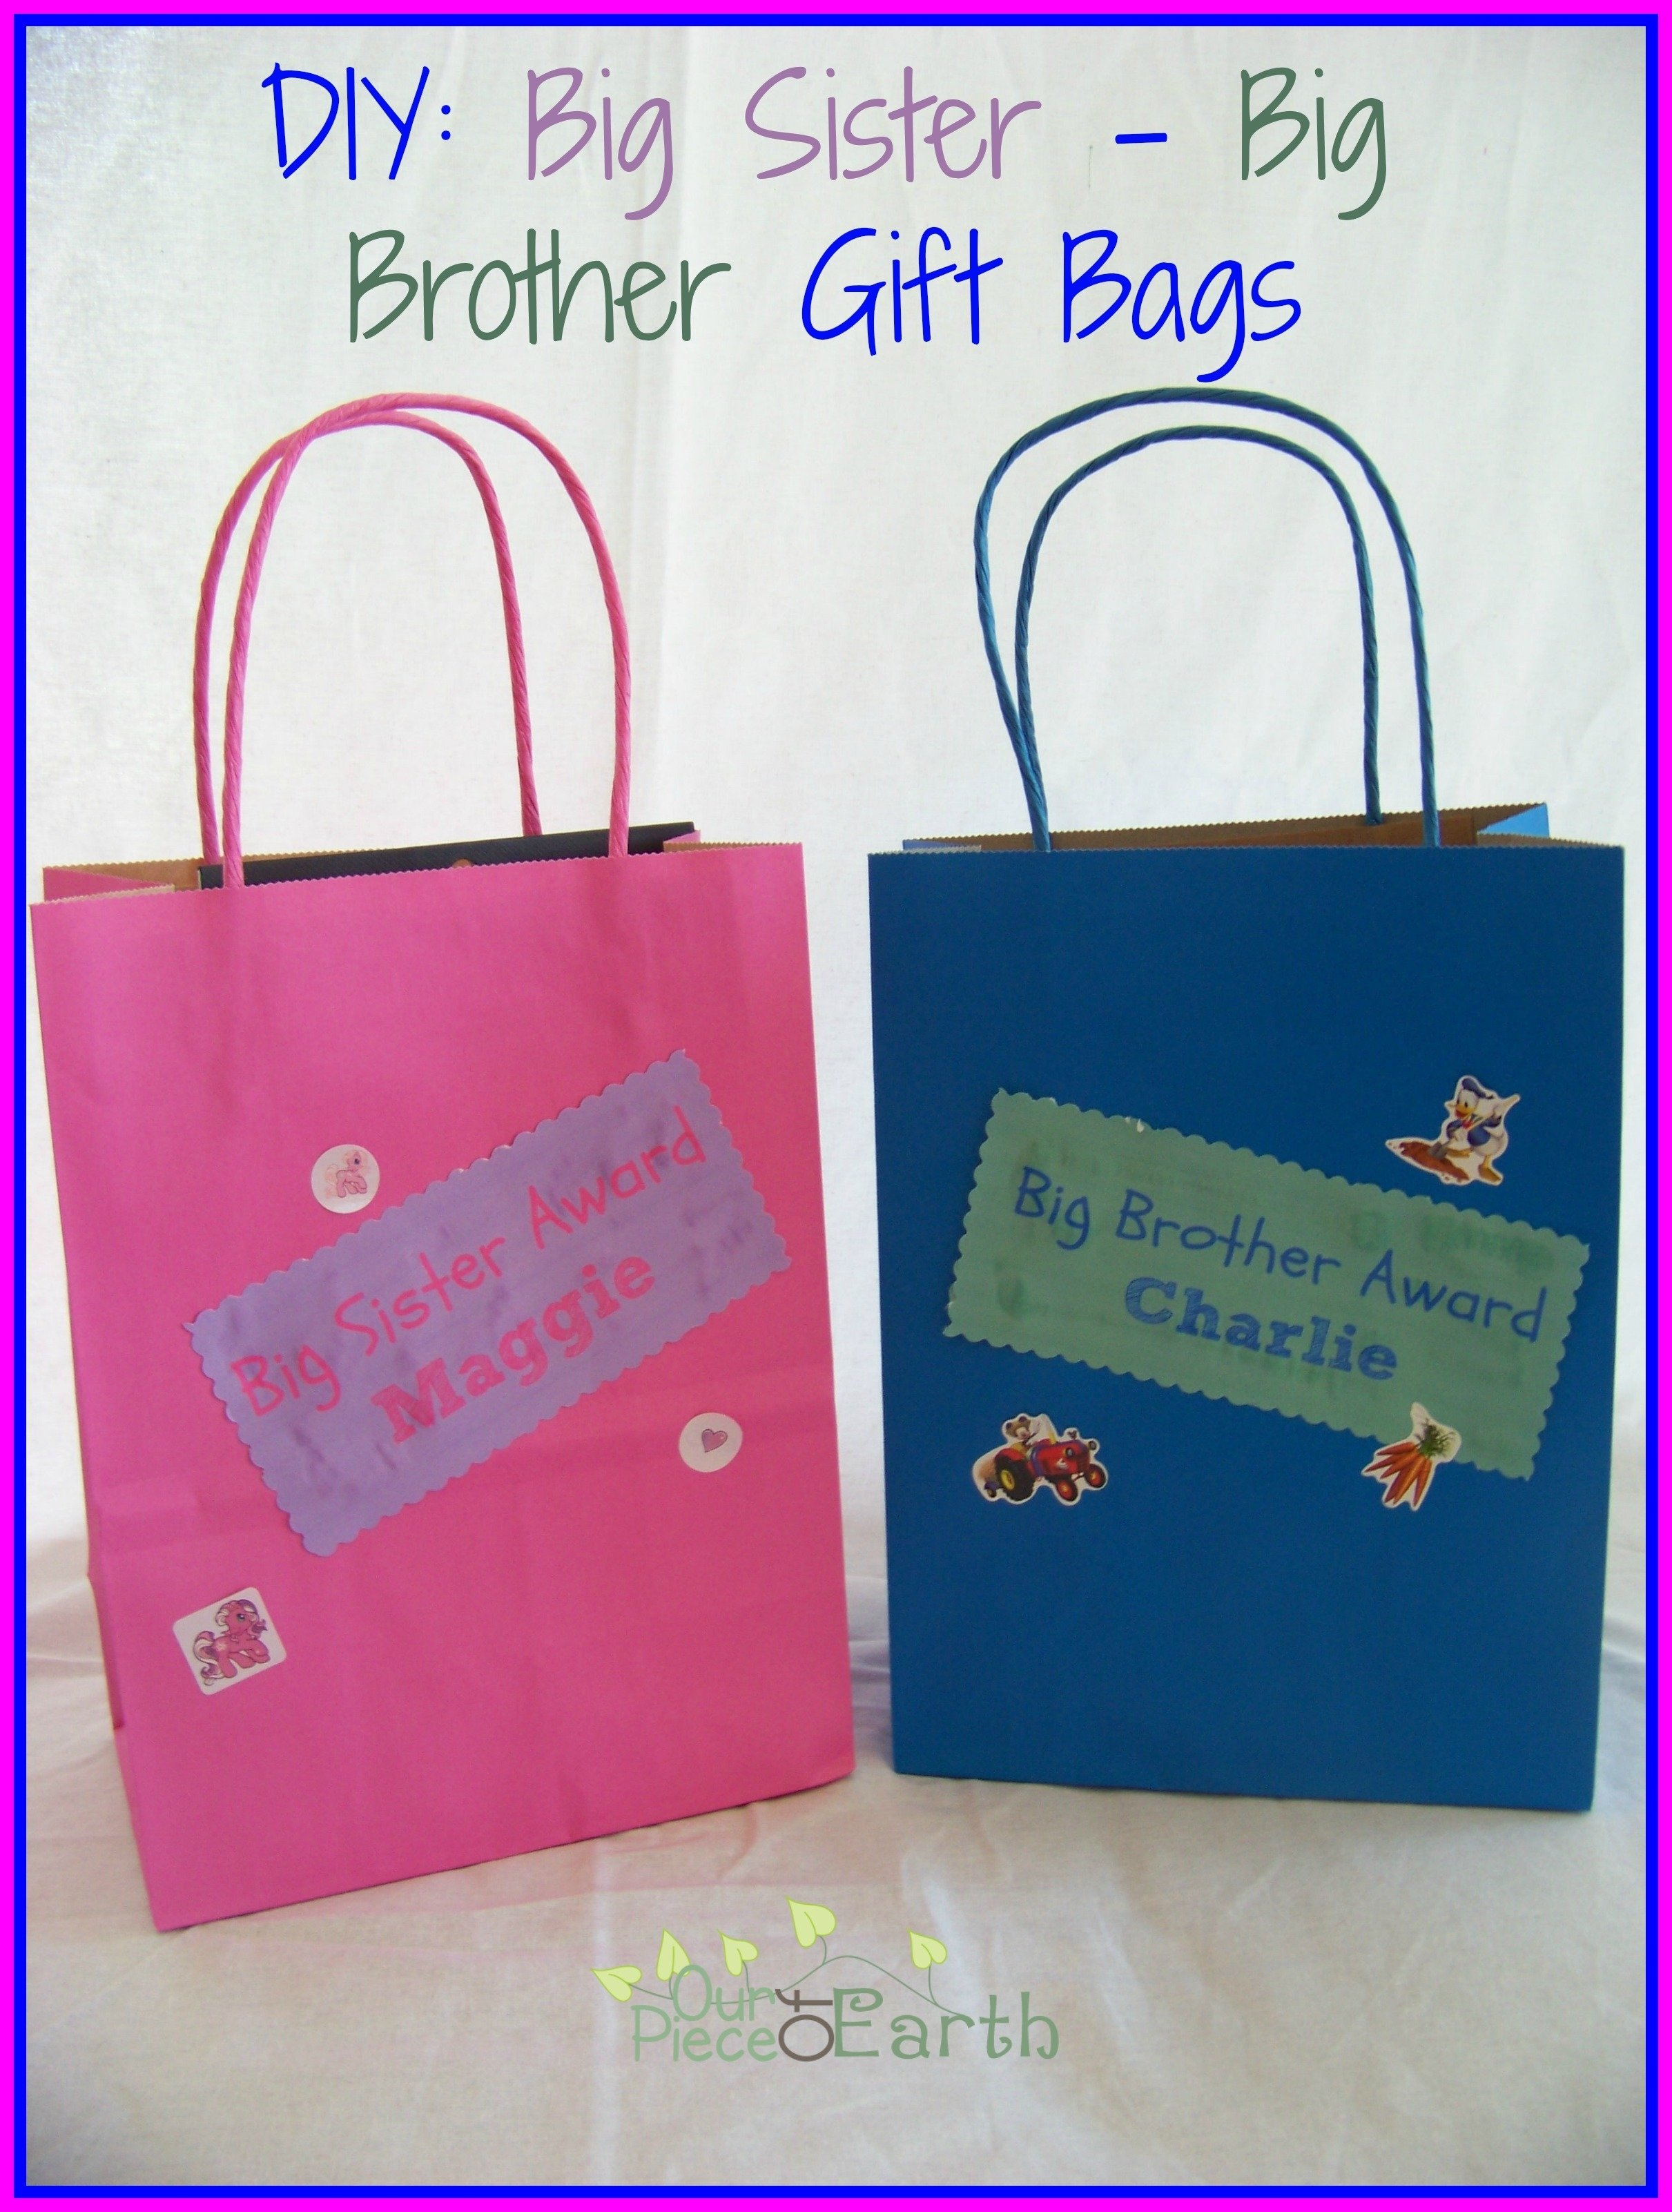 10 Most Popular Gift Ideas For Sister From Brother big sister big brother gift bags our piece of earth 5